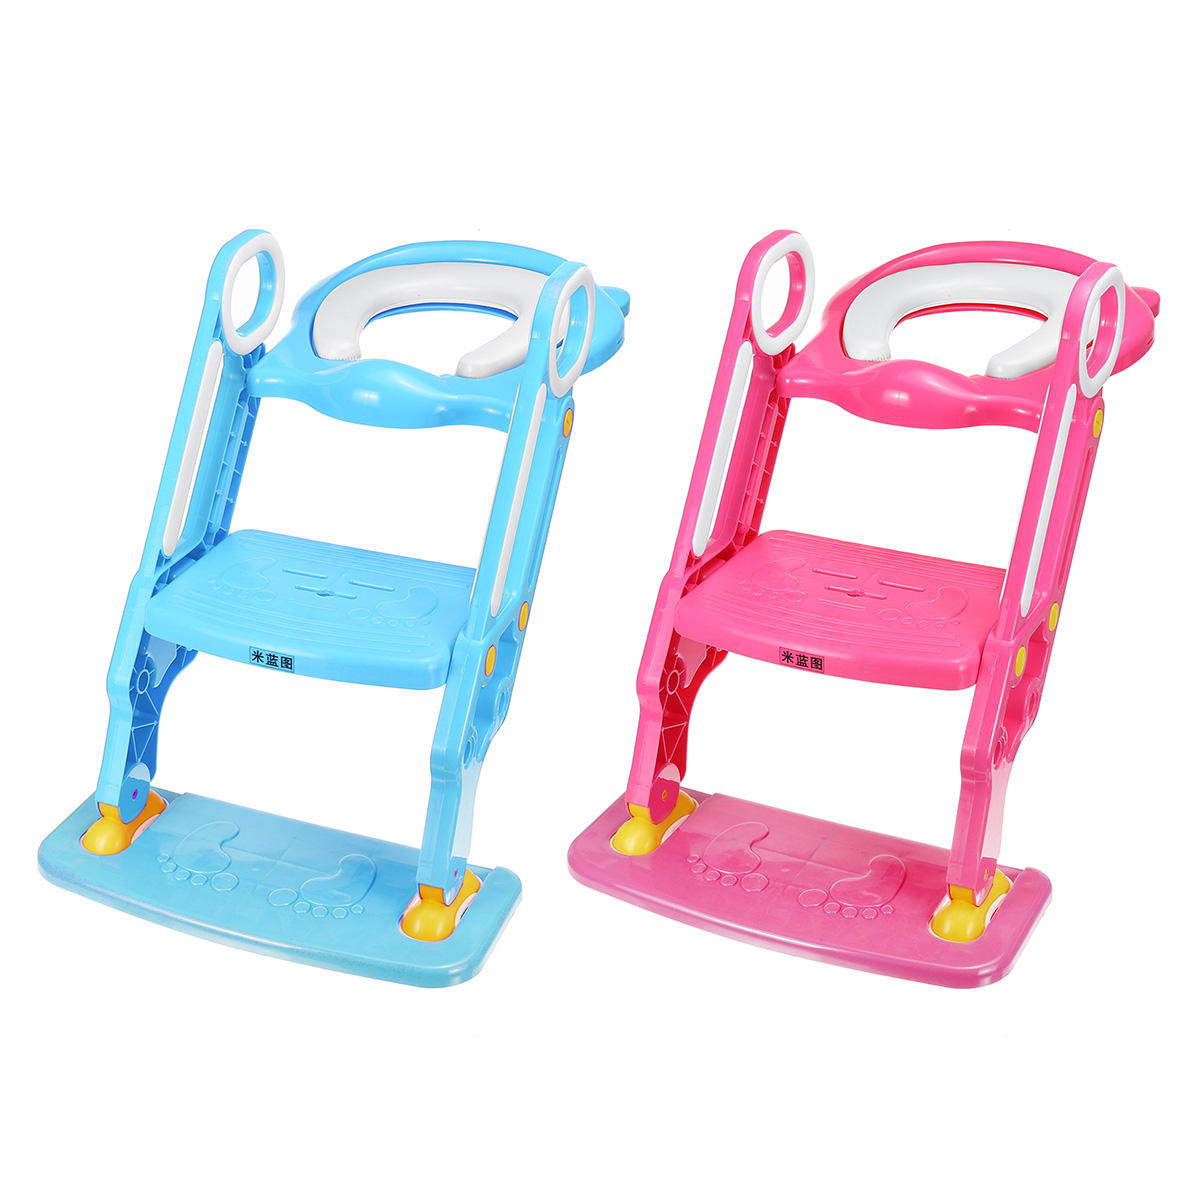 380*180*80 mm Auxiliary Toilet Ladder Kids Potty Training Seat